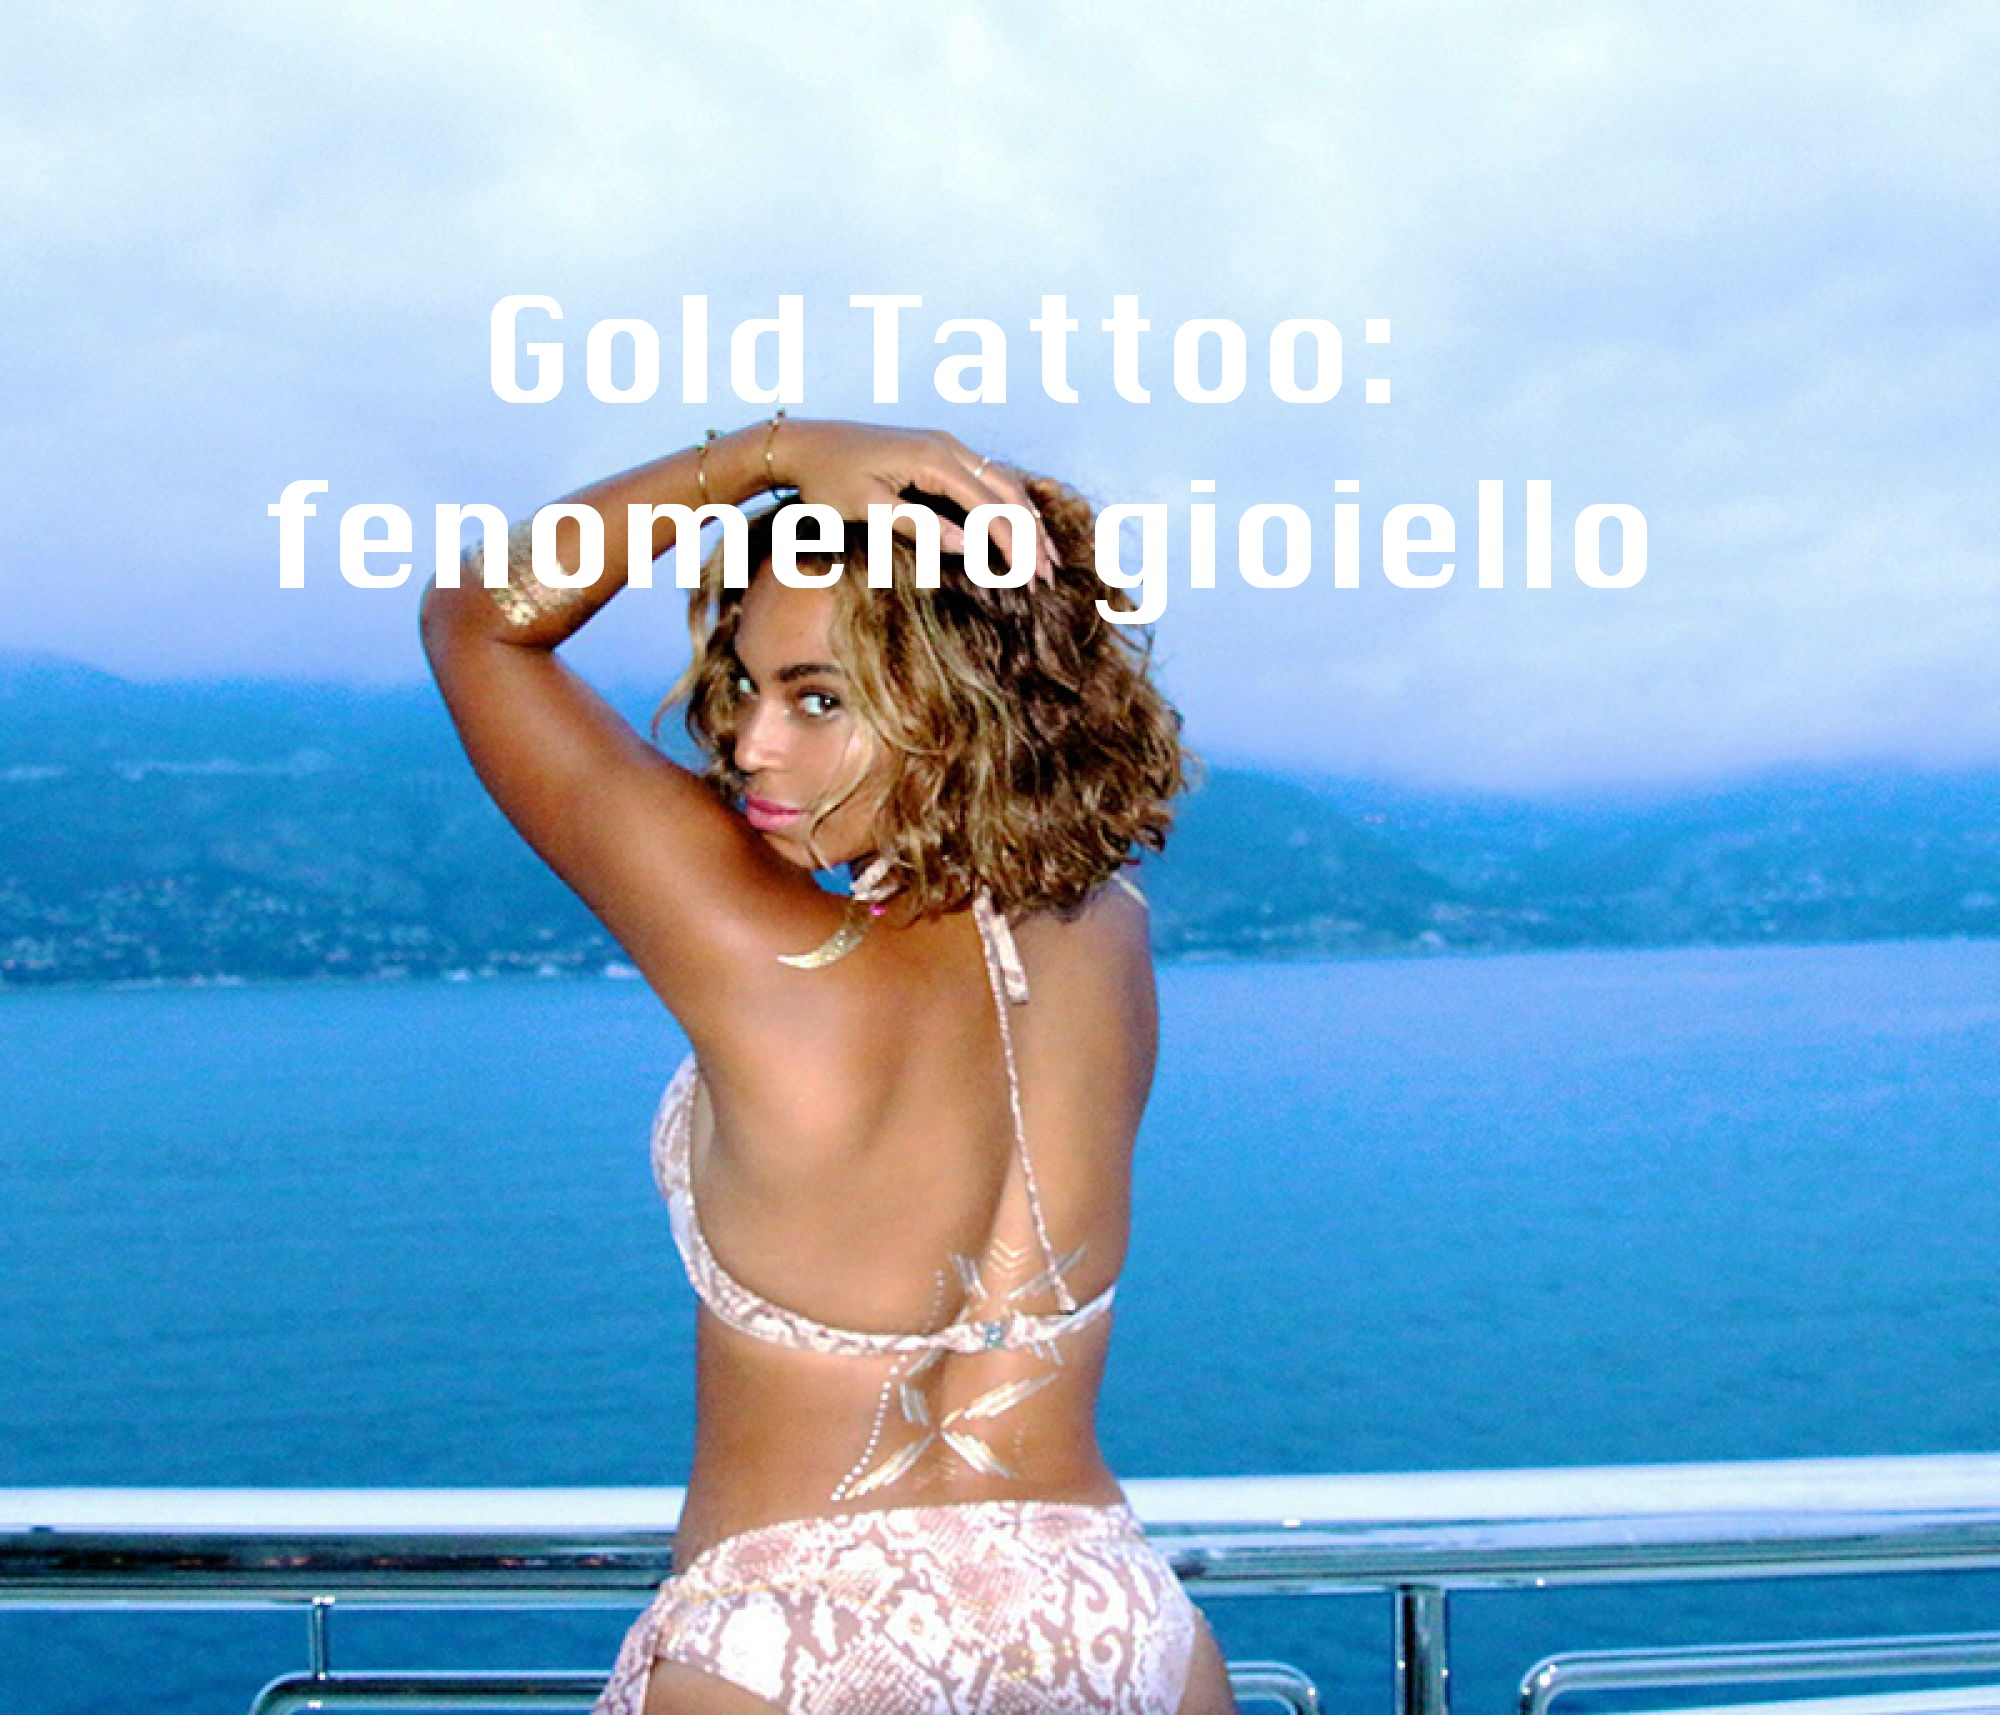 Gold Tattoo: fenomeno gioiello